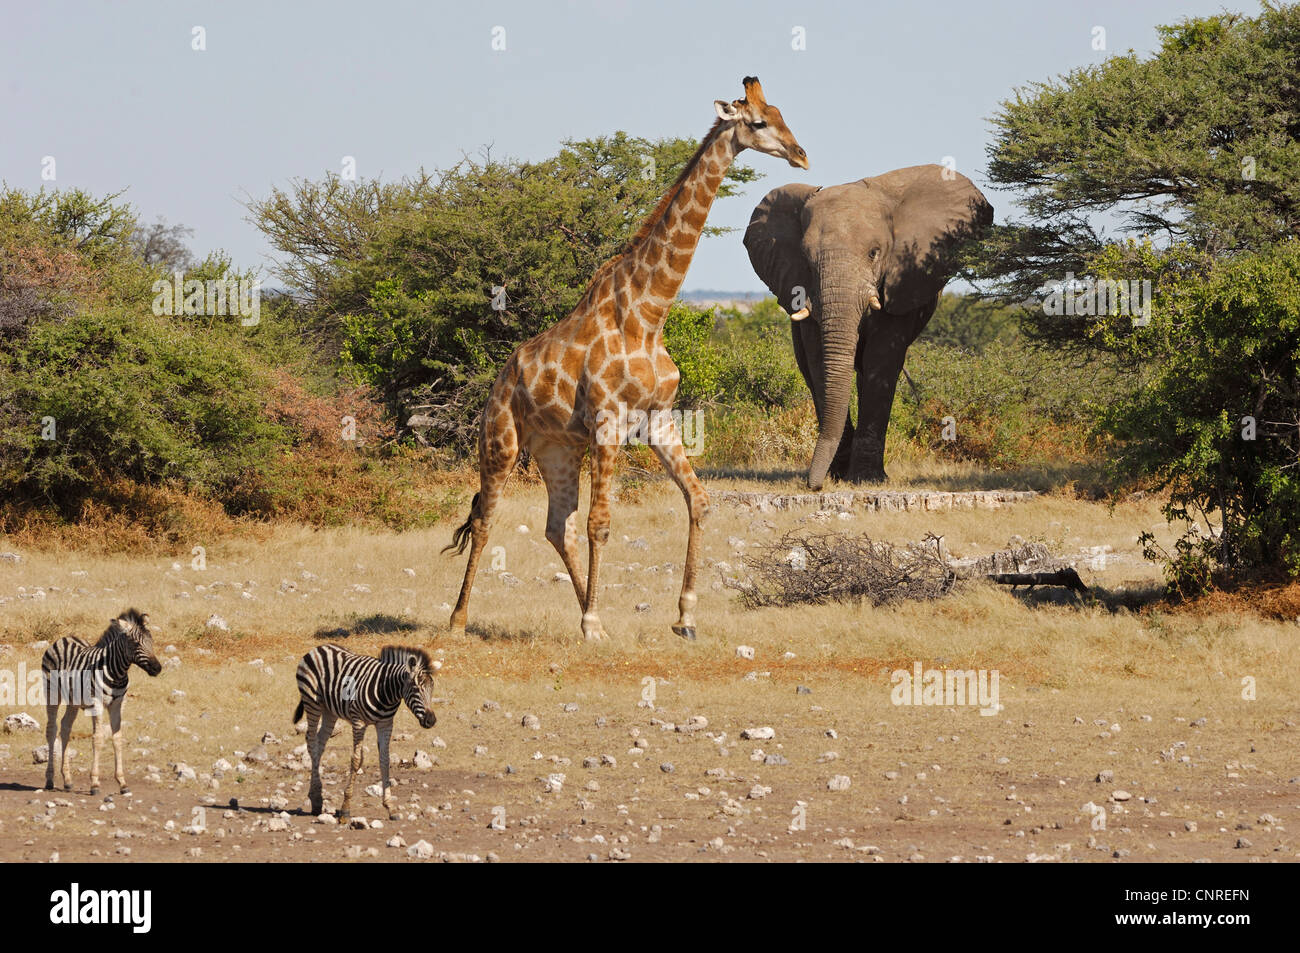 Elephant Giraffe And Zebras At A Water Hole Namibia